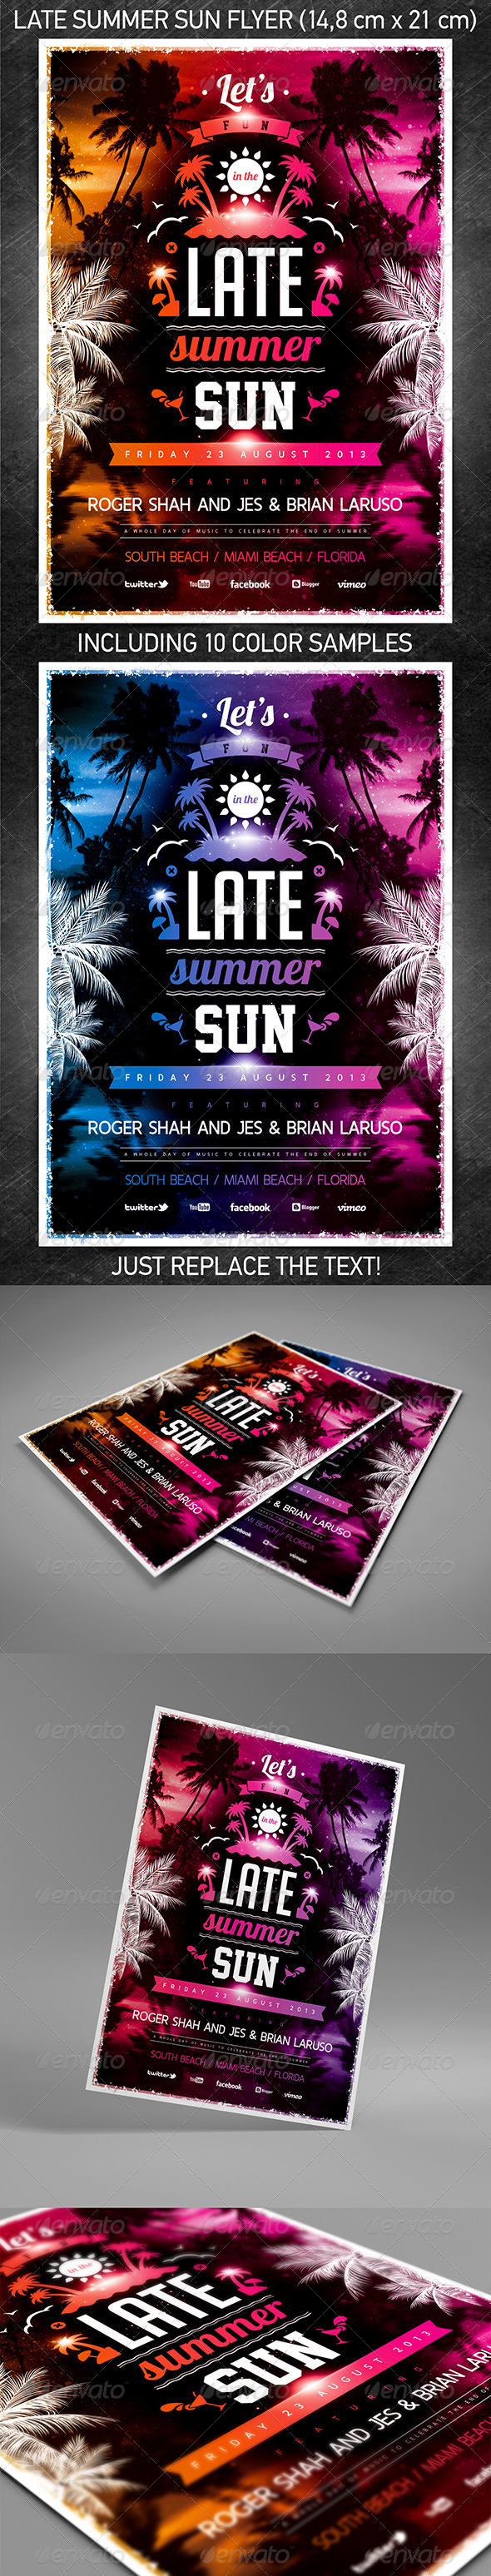 GraphicRiver Late Summer Sun Party Flyer 5287562